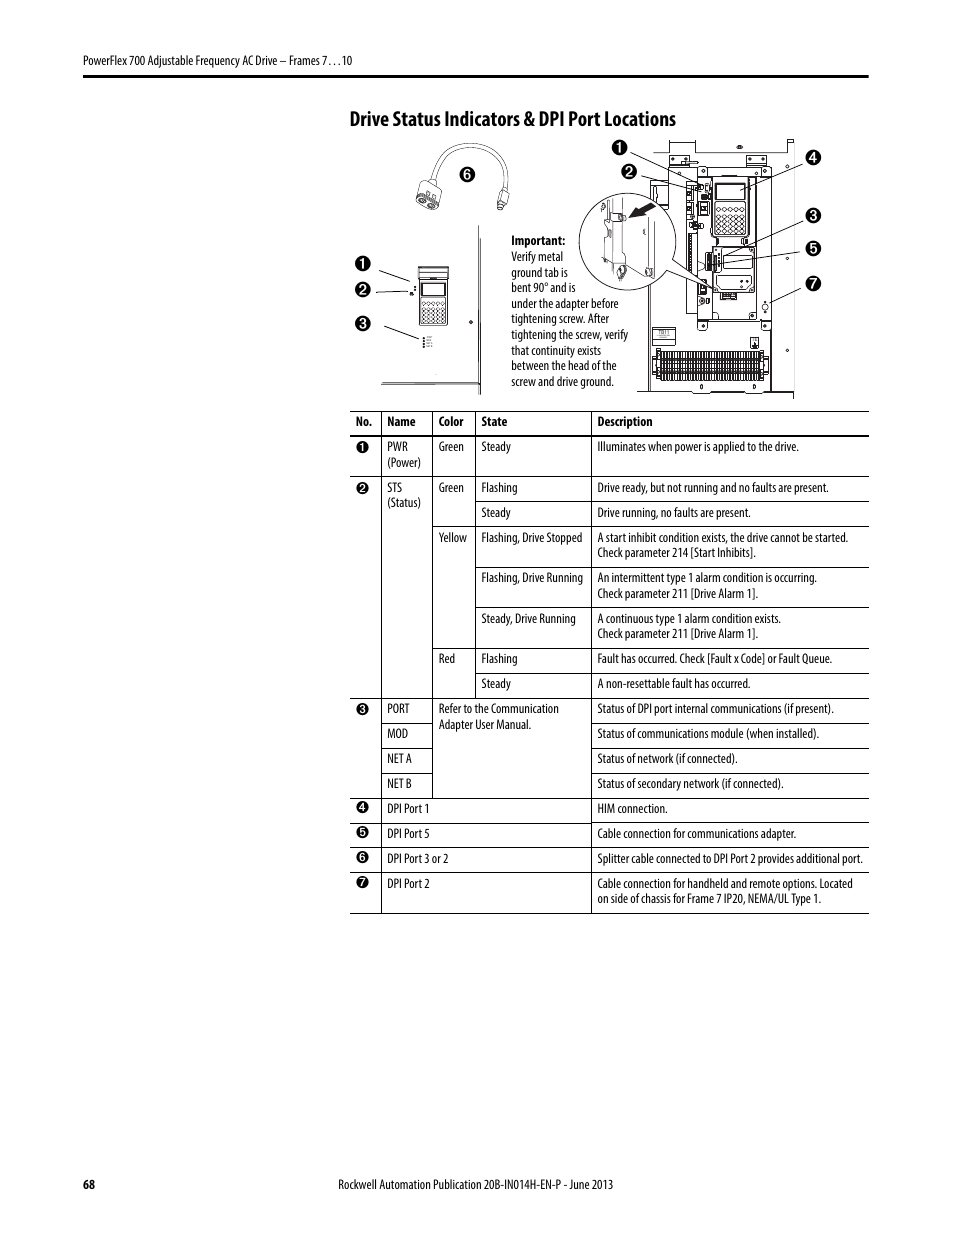 Powerflex 755 Wiring Diagram Explore On The Net Rockwell 700 Diagrams Imageresizertool Com Frame 8